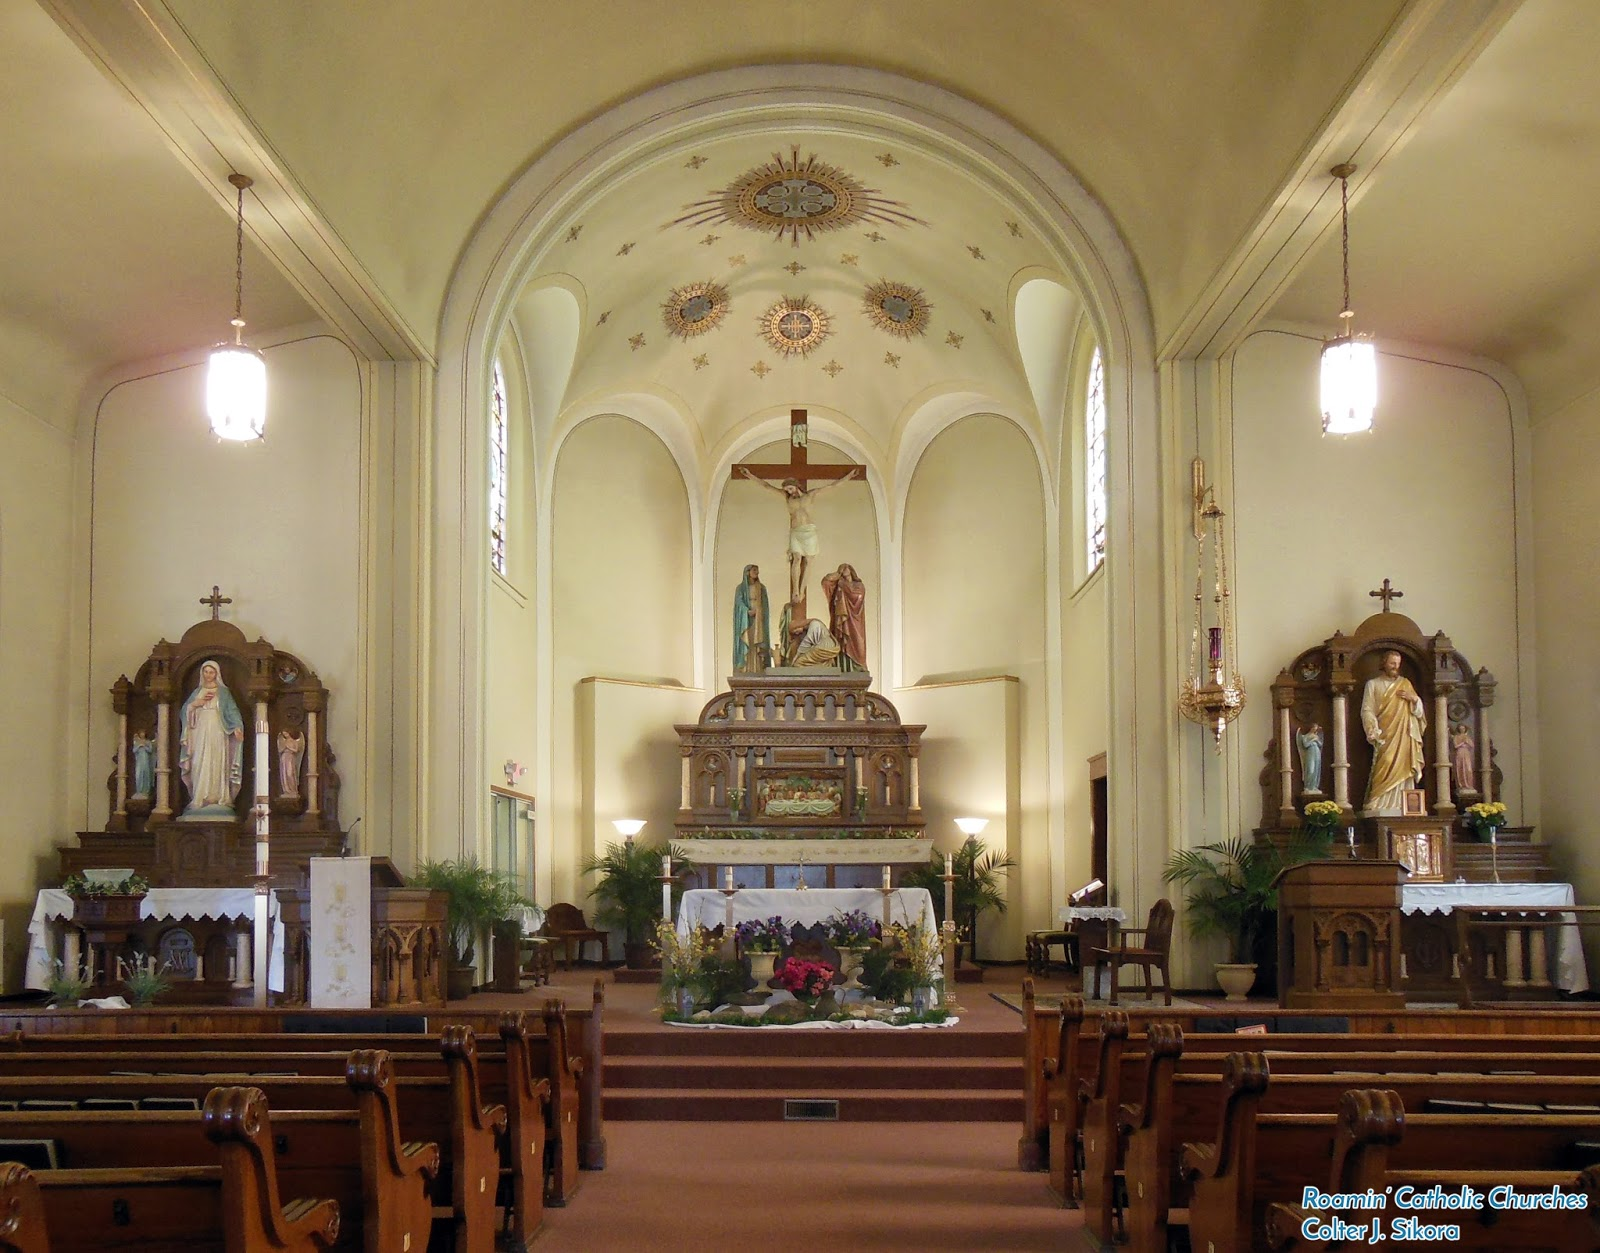 Awesome Churches For Sale In Detroit Michigan #1: DSCN0764.jpg